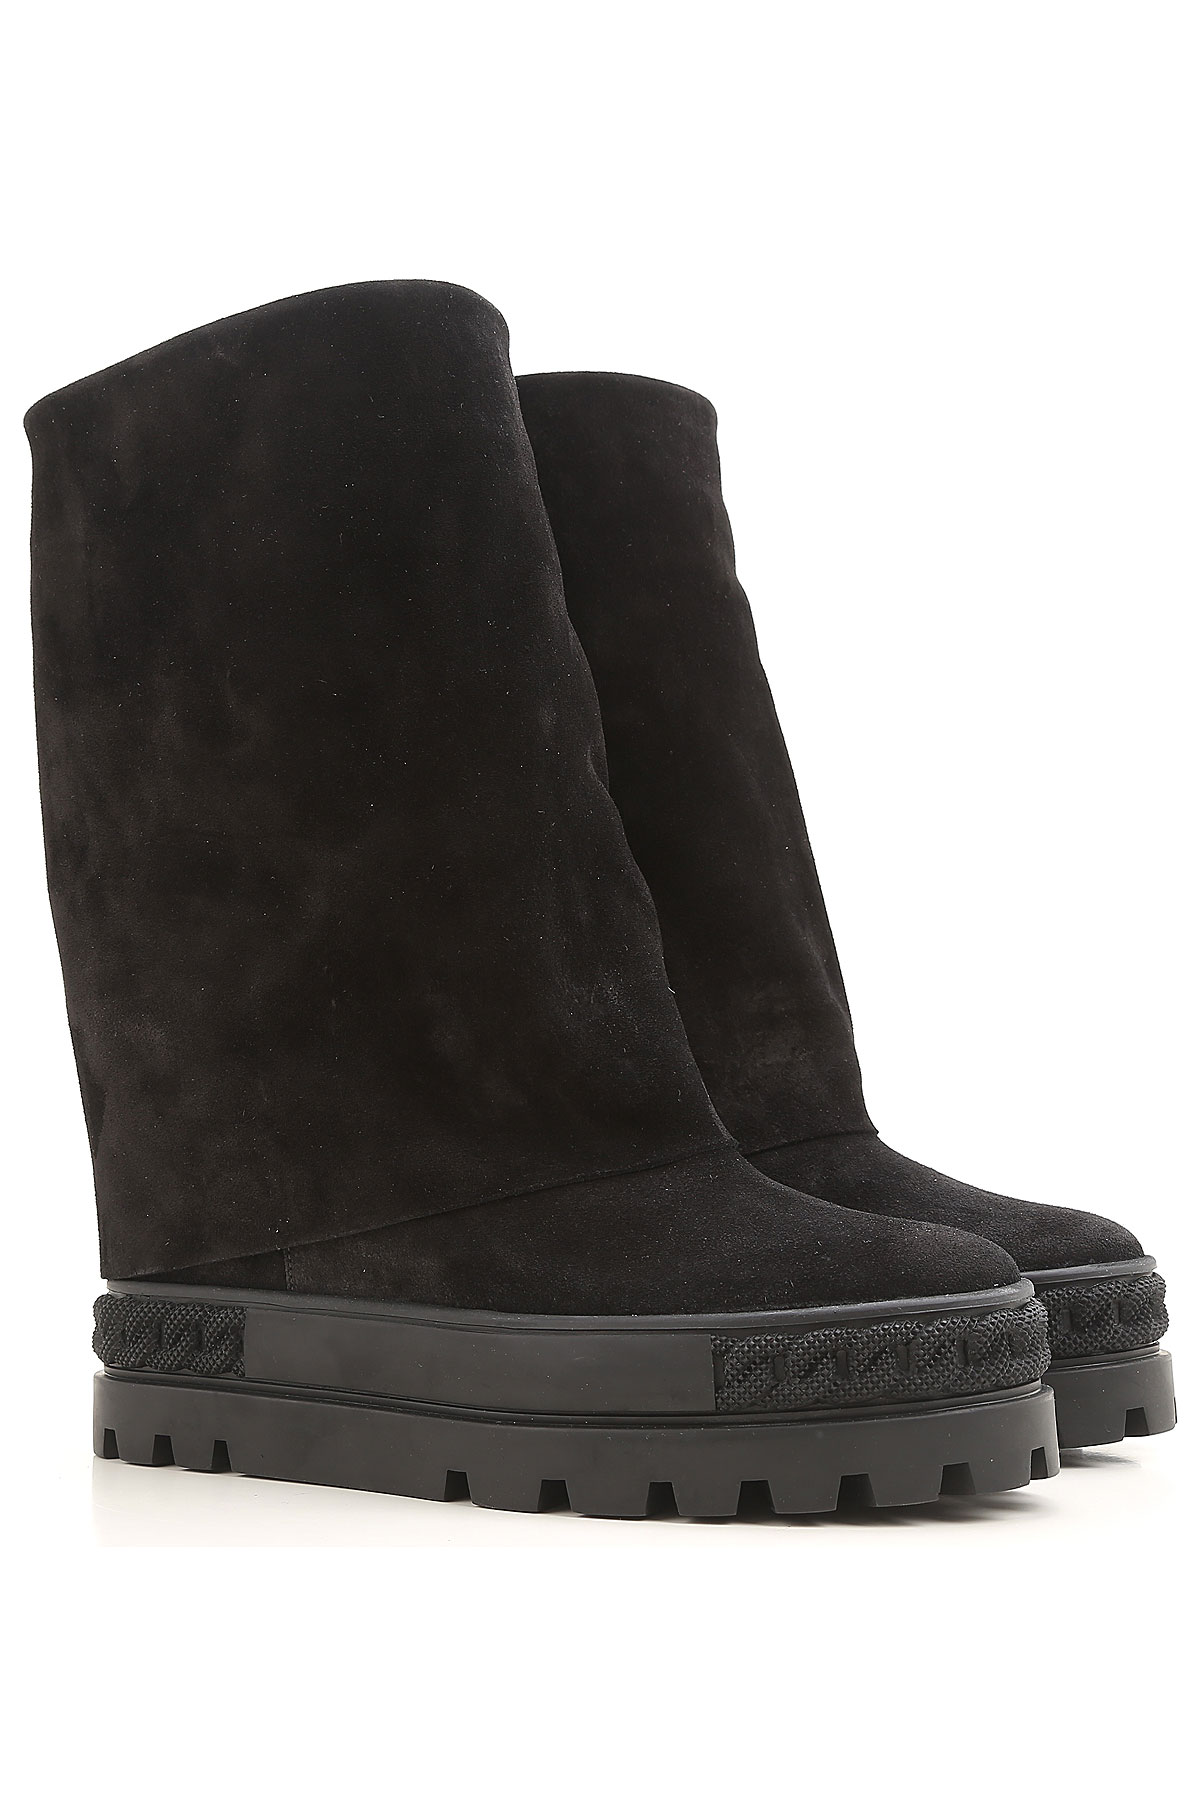 Image of Casadei Boots for Women, Booties, Black, Suede leather, 2017, 10 6 6.5 7 8 8.5 9 9.5